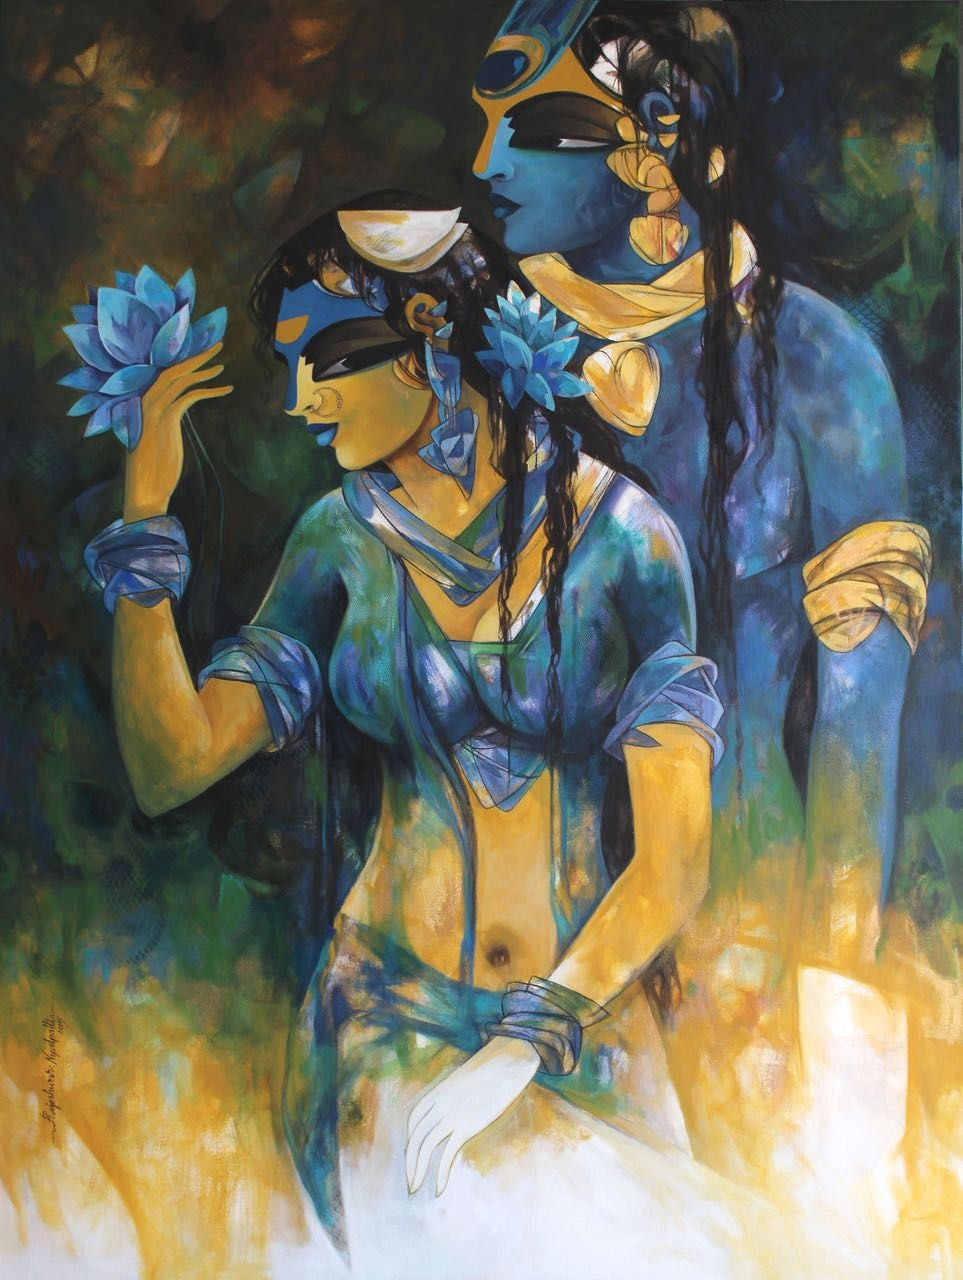 Painting images of lord shiva images for Buy mural paintings